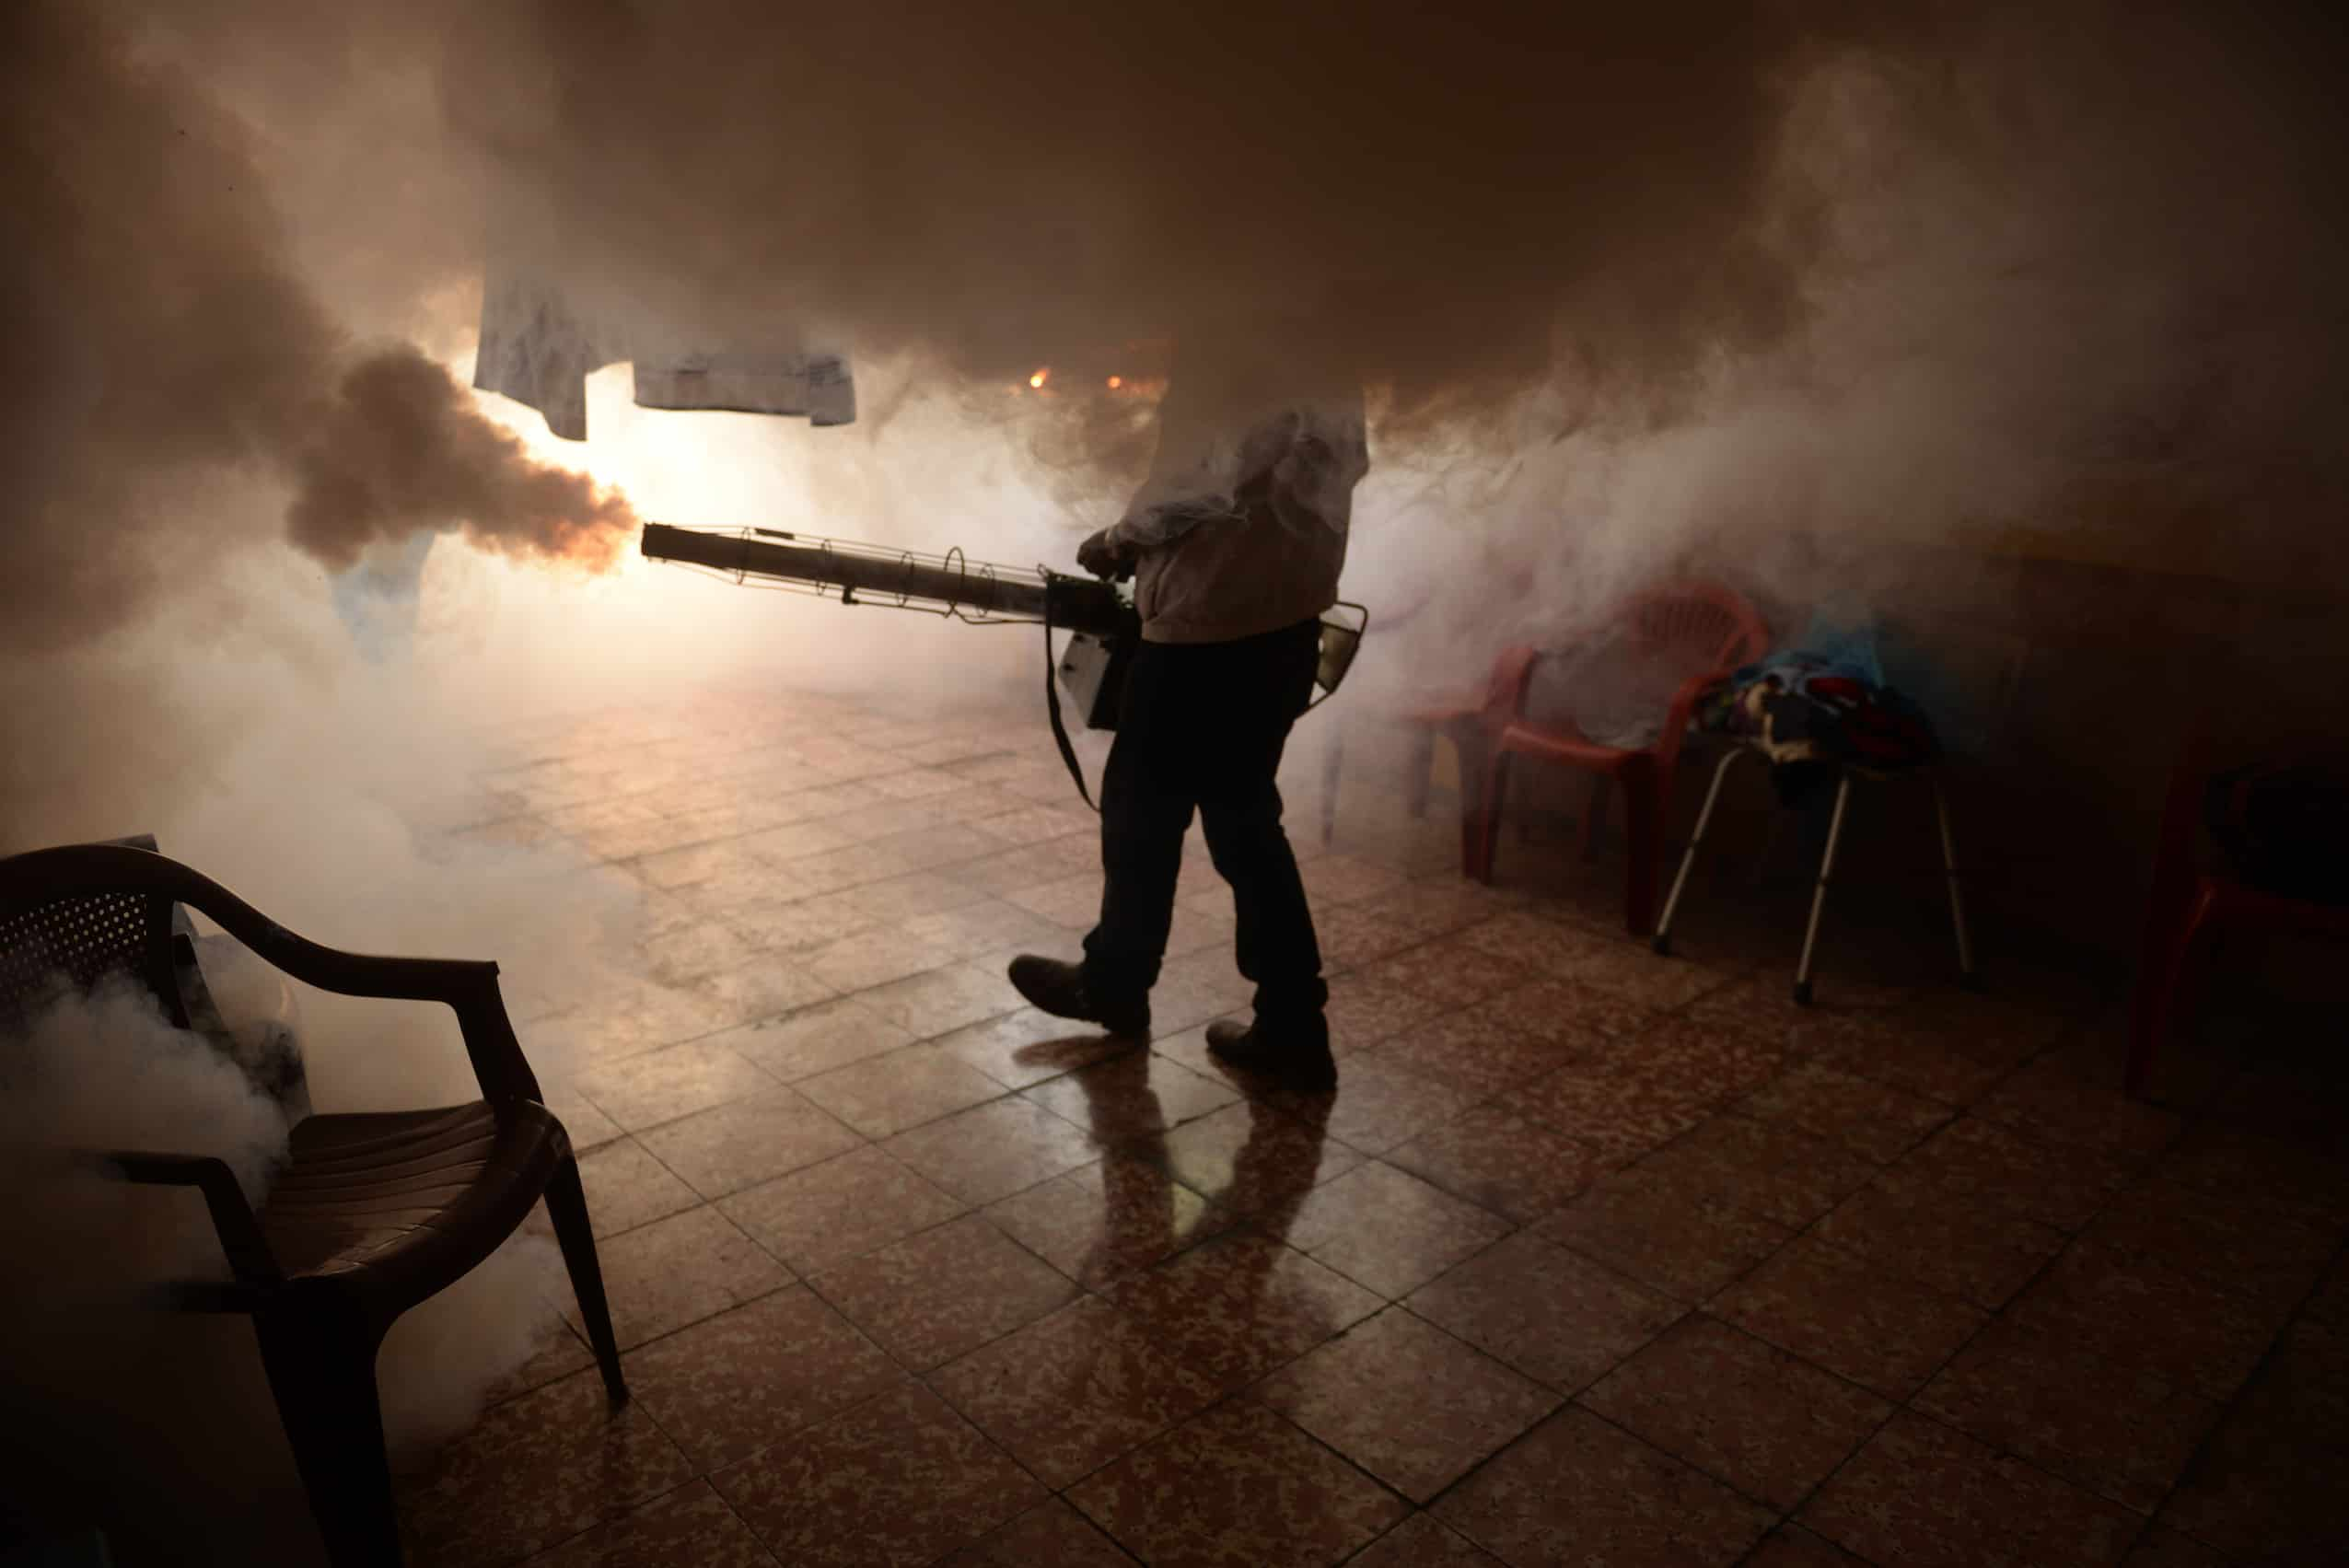 fumigating against Zika virus